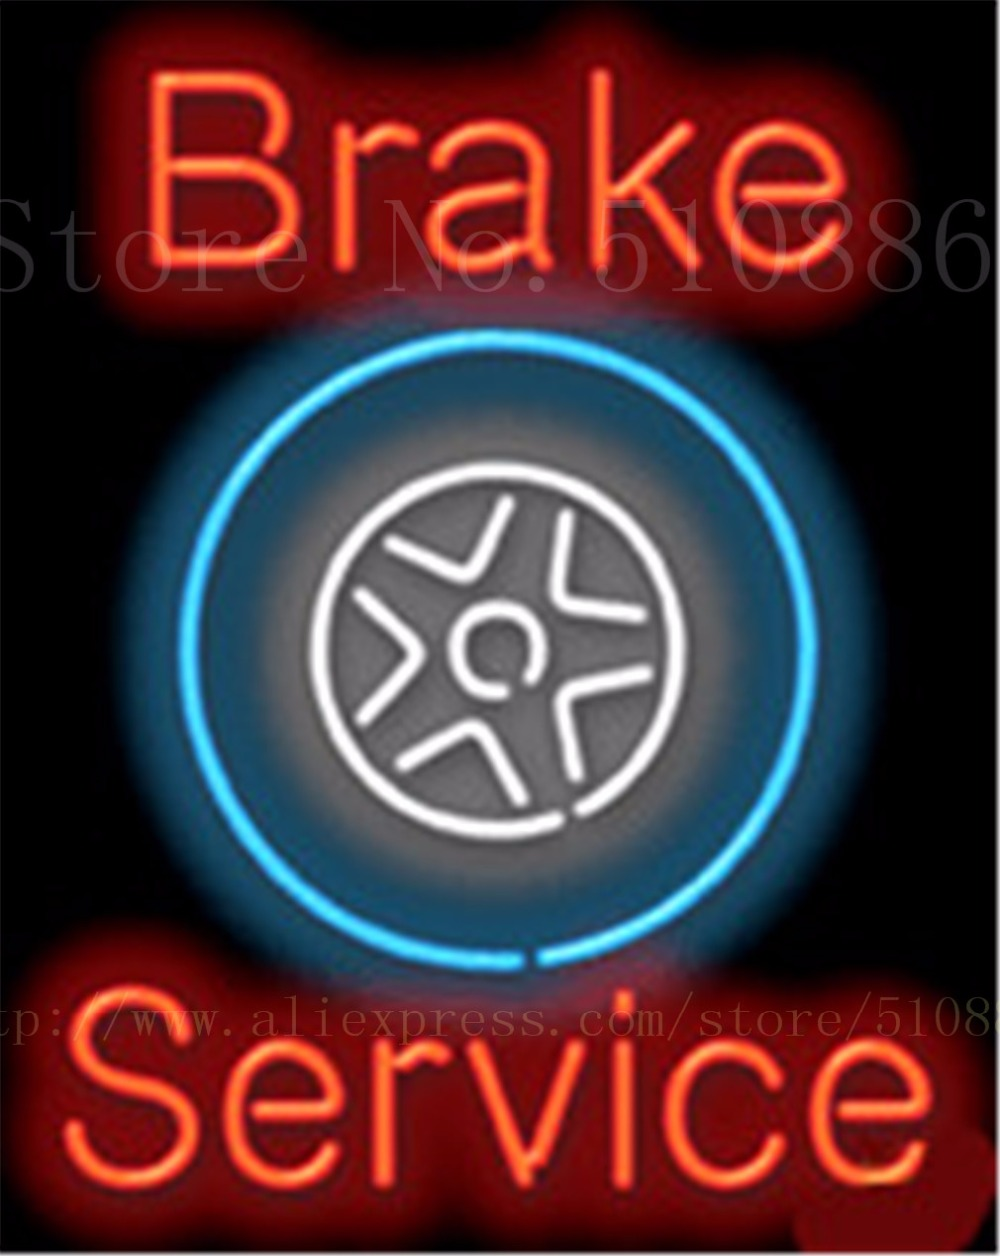 "Brake Service Auto Car Repair Real Tube Car neon sign Beer Handcrafted Automotive signs Shop Store Business Signboard 19""x15""(China (Mainland))"